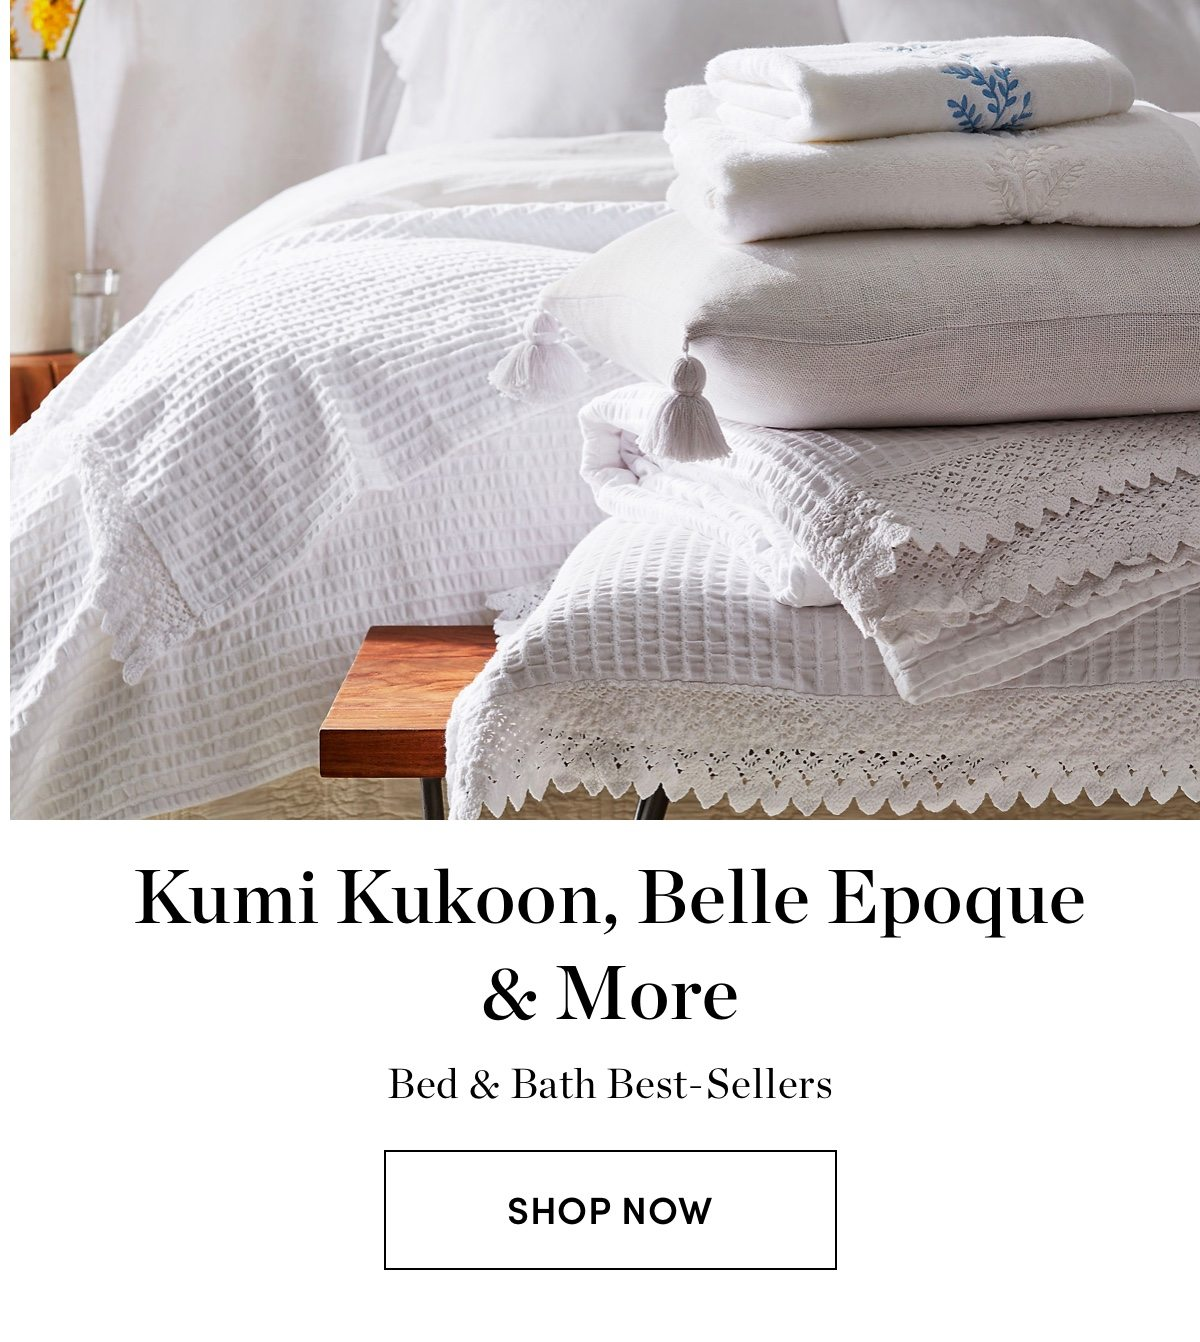 Kumi Kukoon, Belle Epoque & More